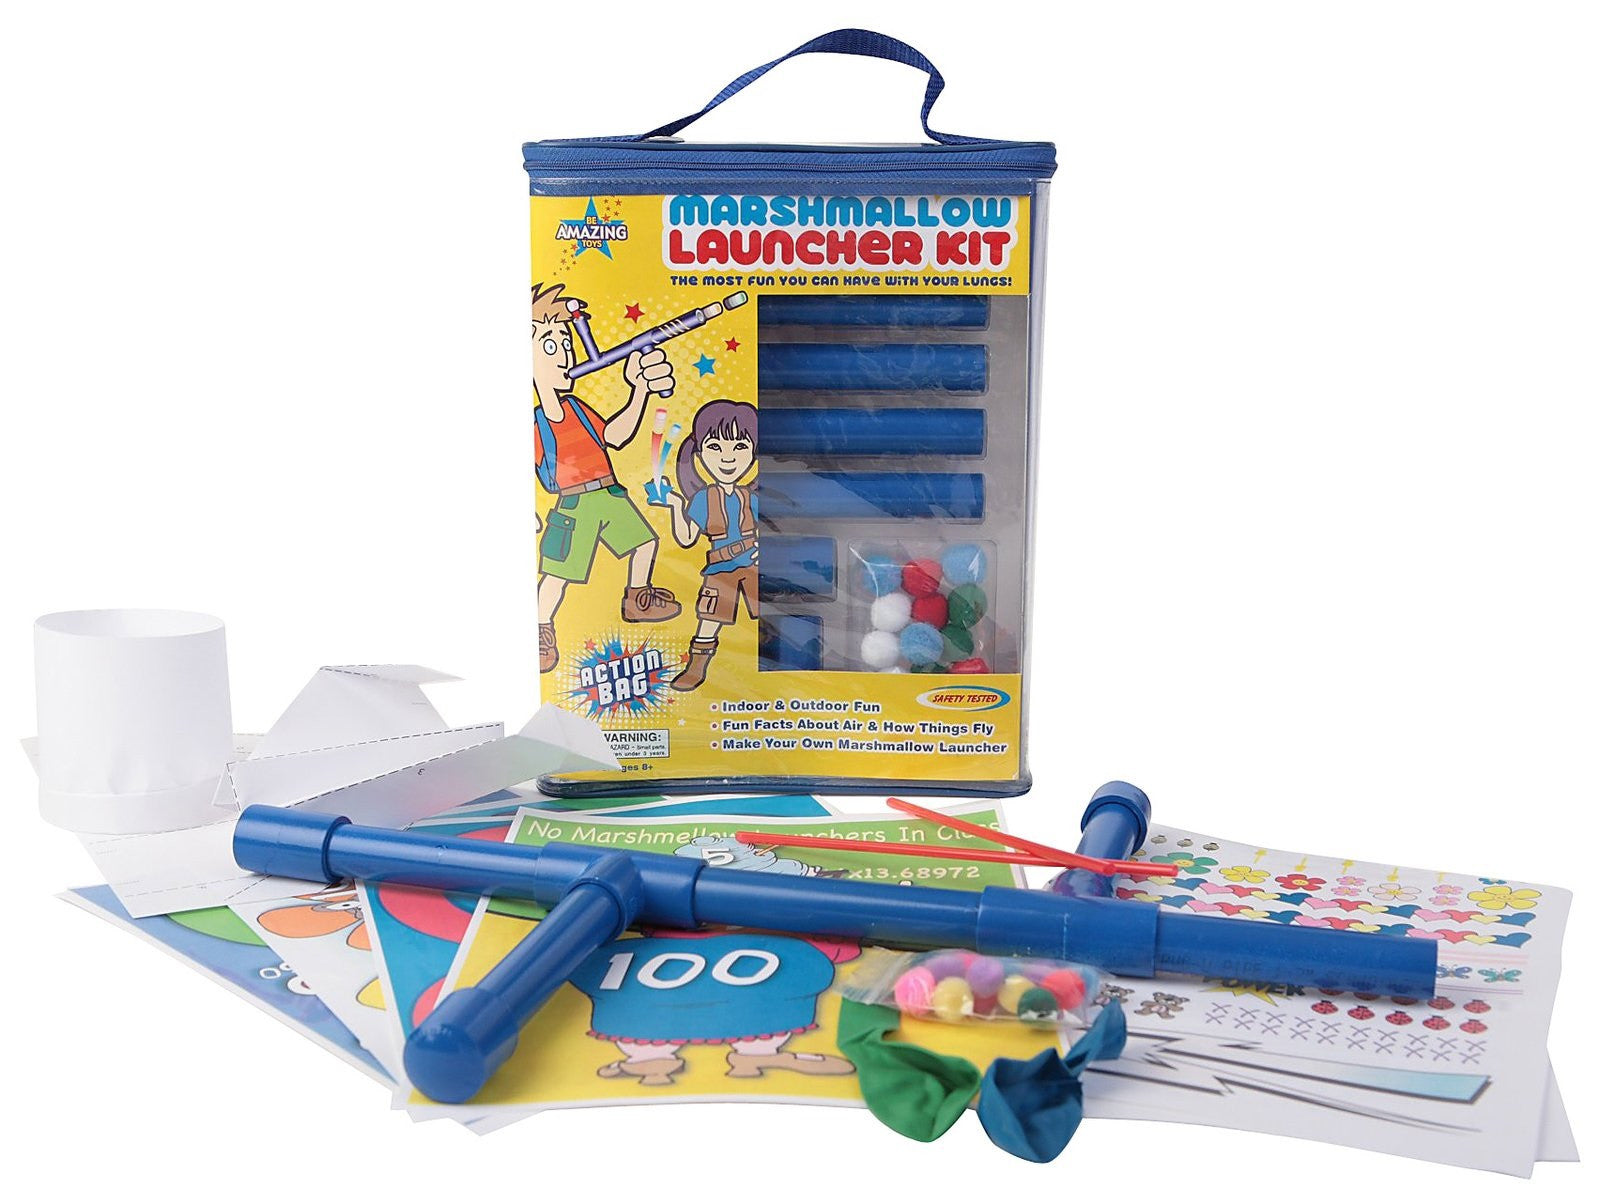 Be Amazing! Action Bag Marshmallow Launcher Kit - Off The Wall Toys and Gifts